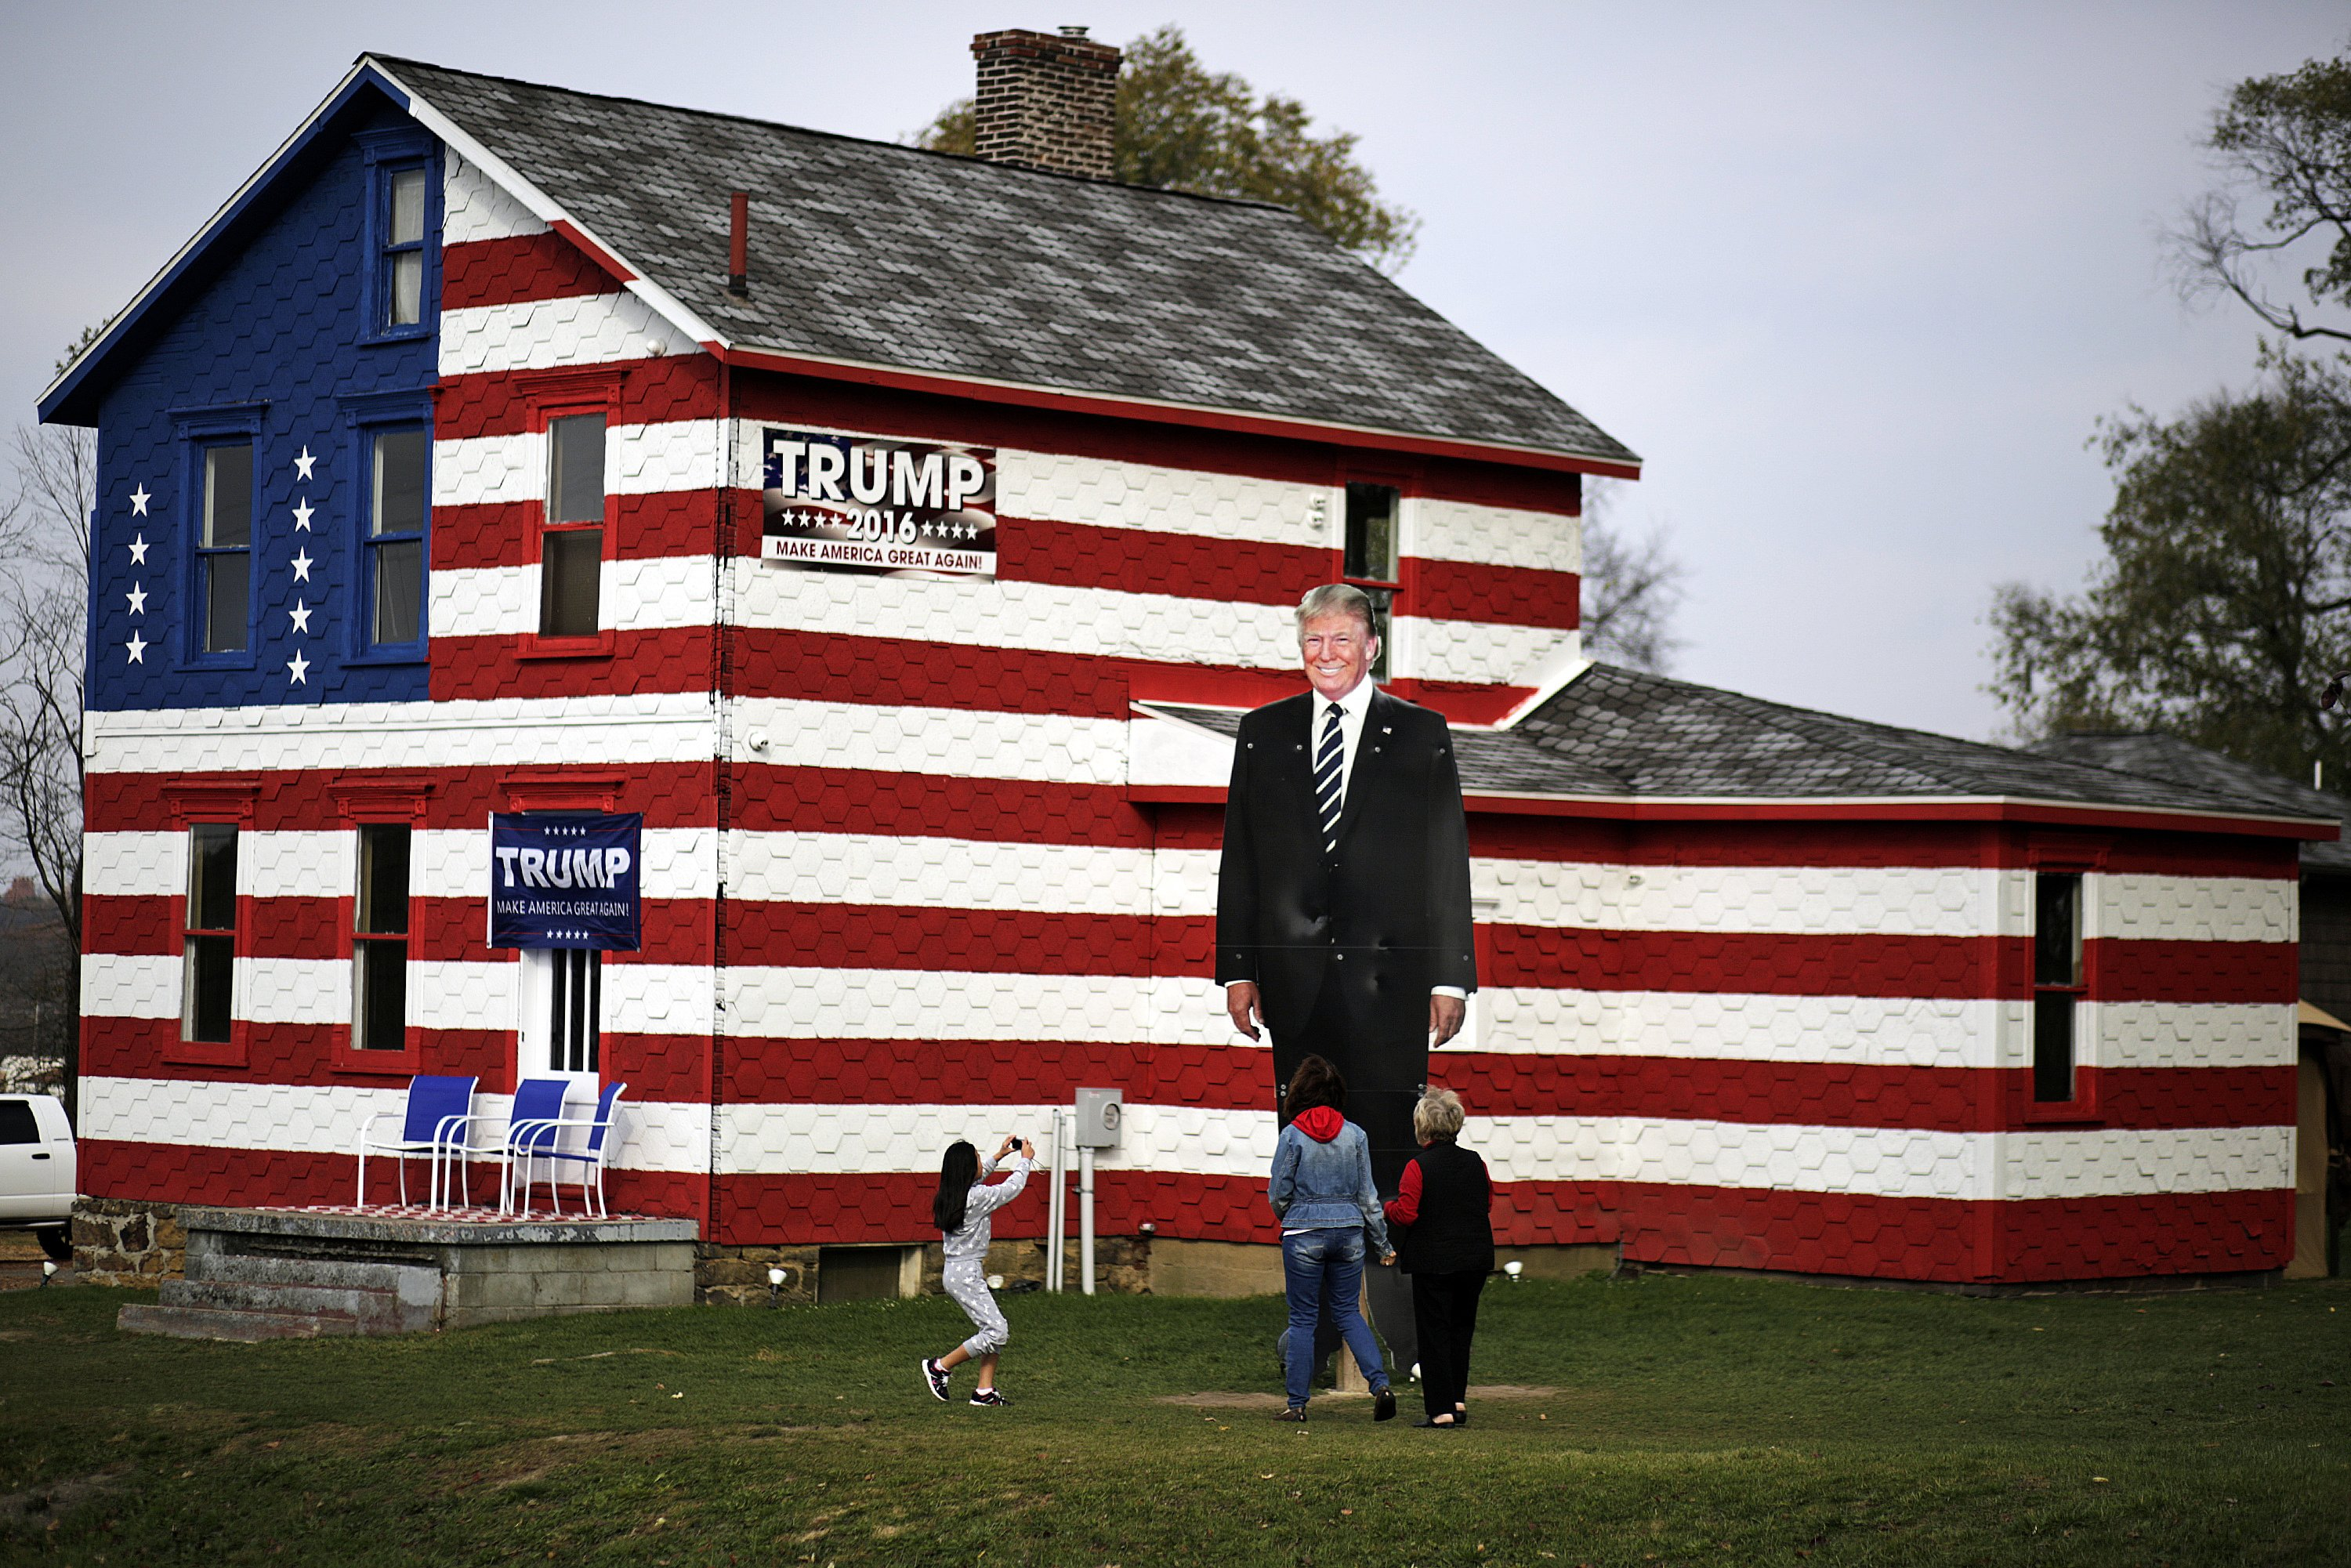 Visitors take photos of a giant cutout of Donald Trump in front of the Trump House owned by Lisa Rossi in Youngstown, Pa. on Nov. 8, 2016.